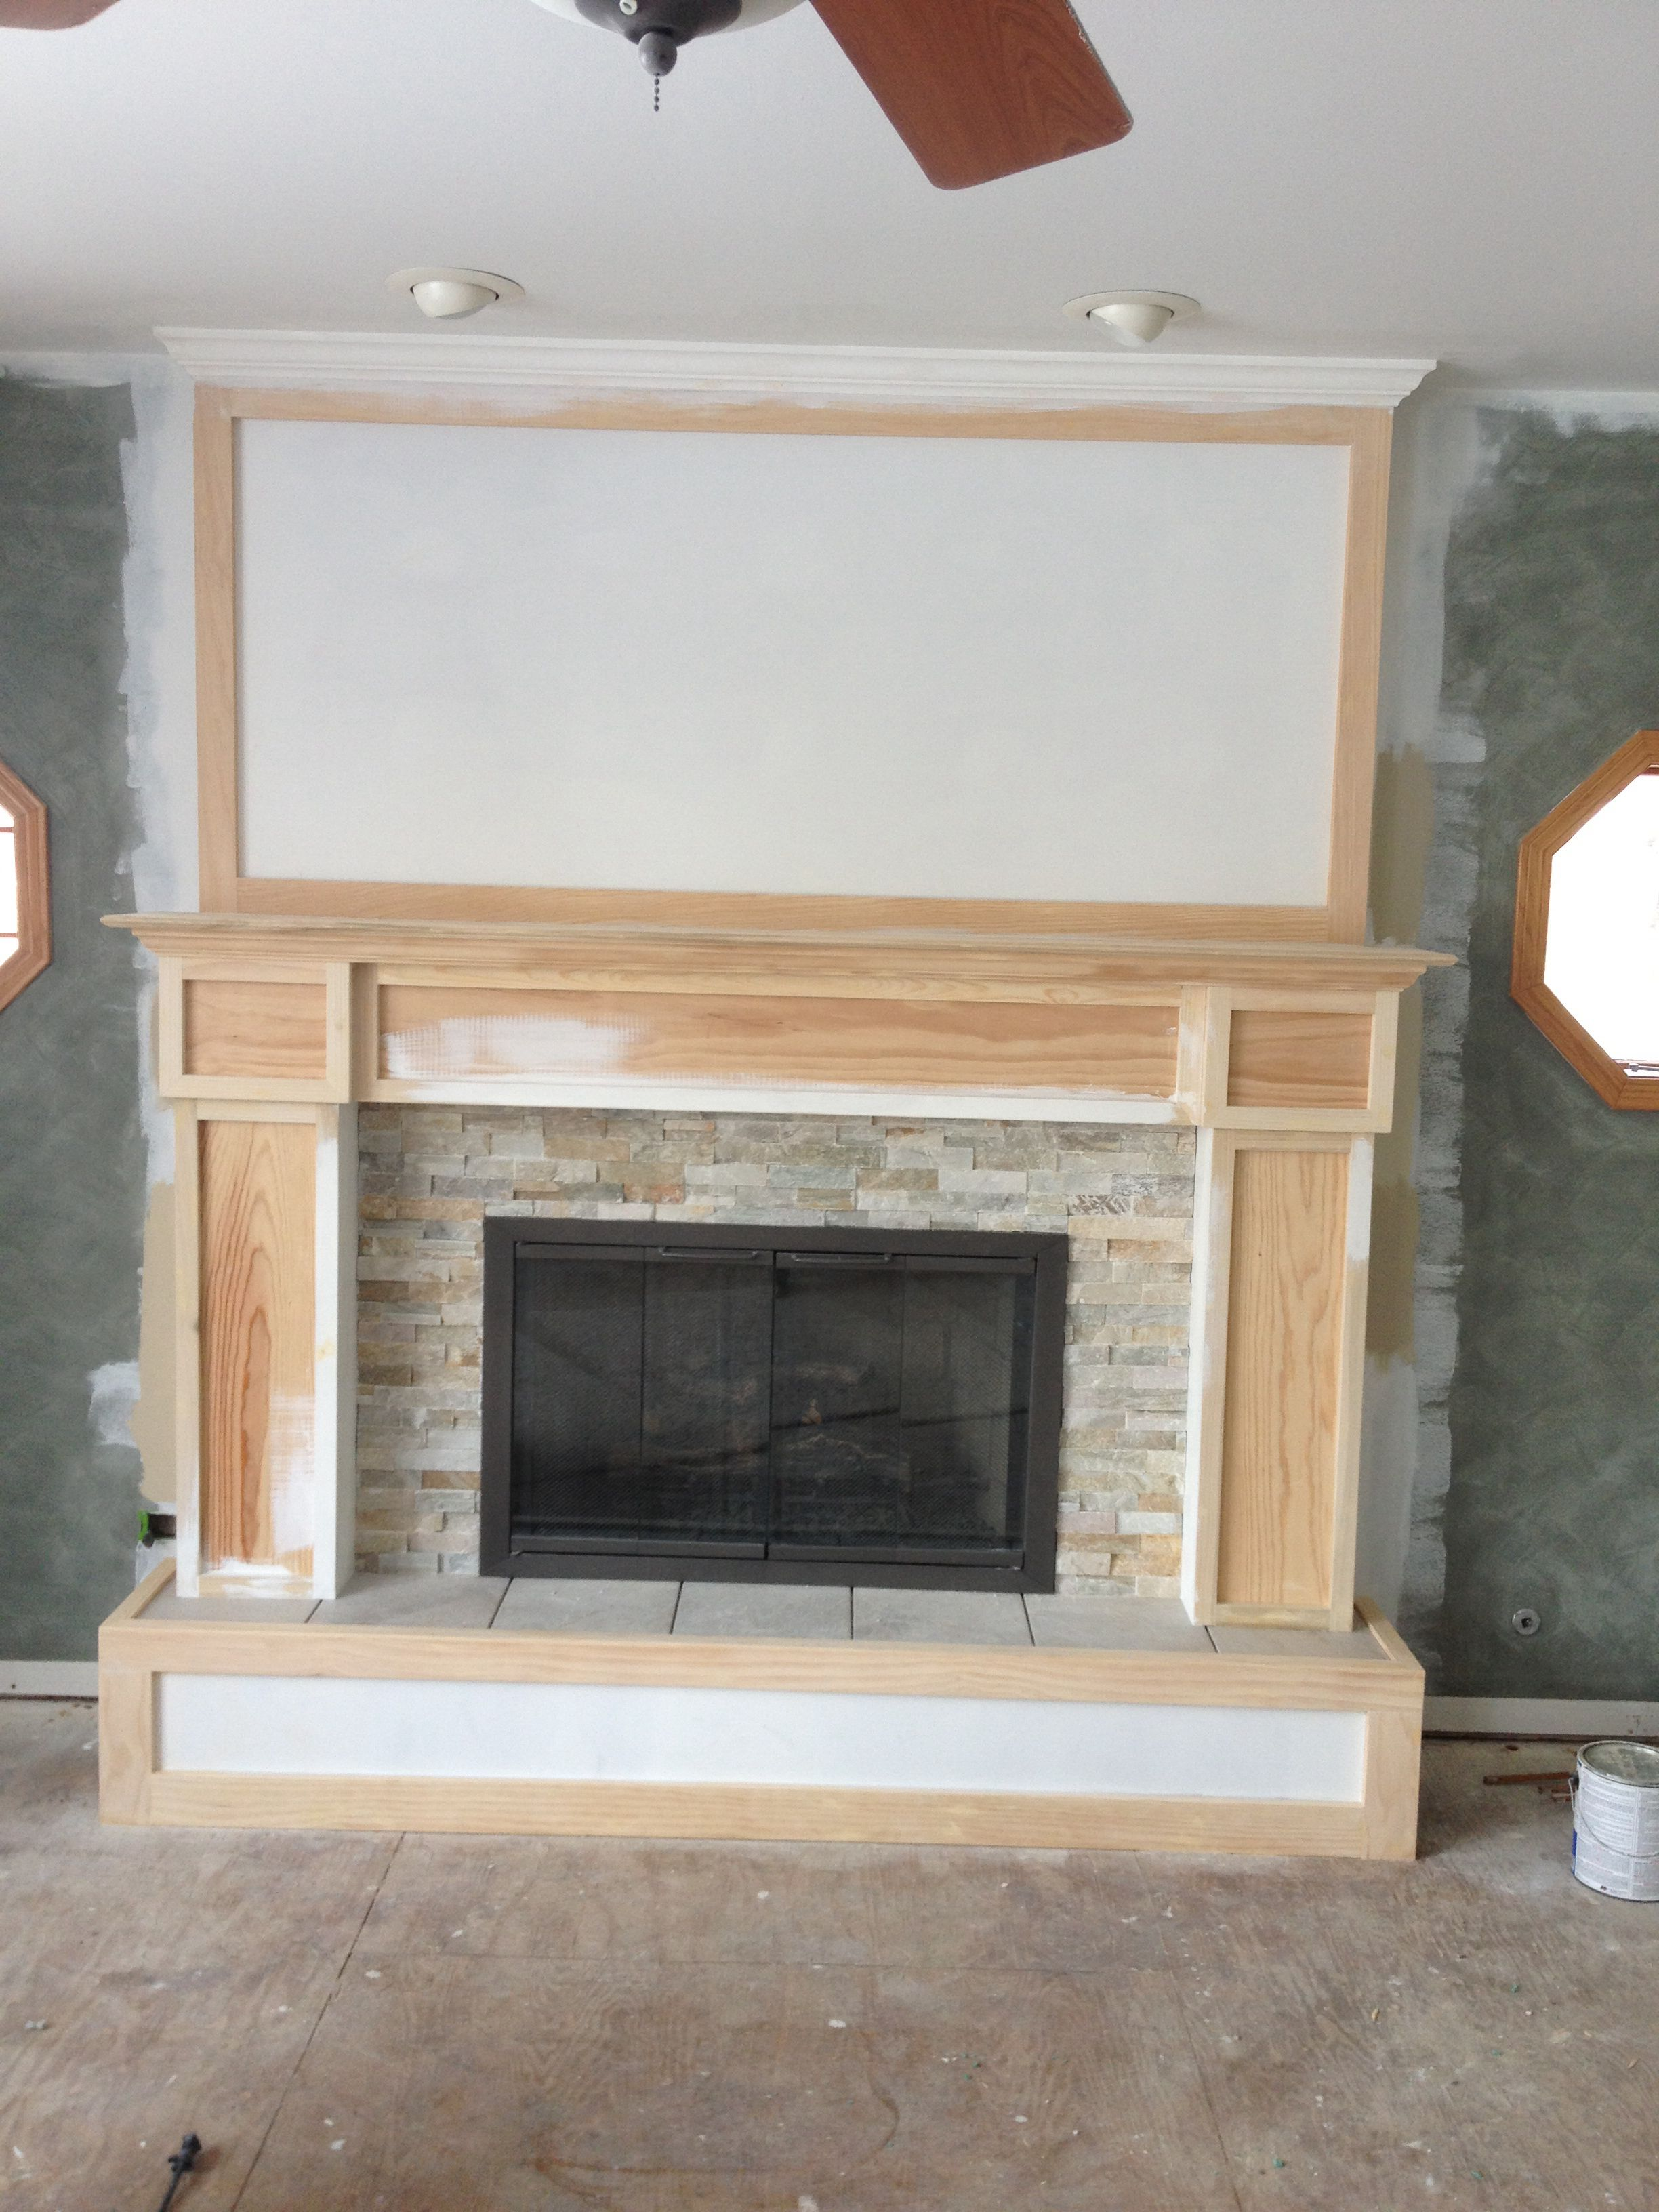 step 6 install fireplace surround we